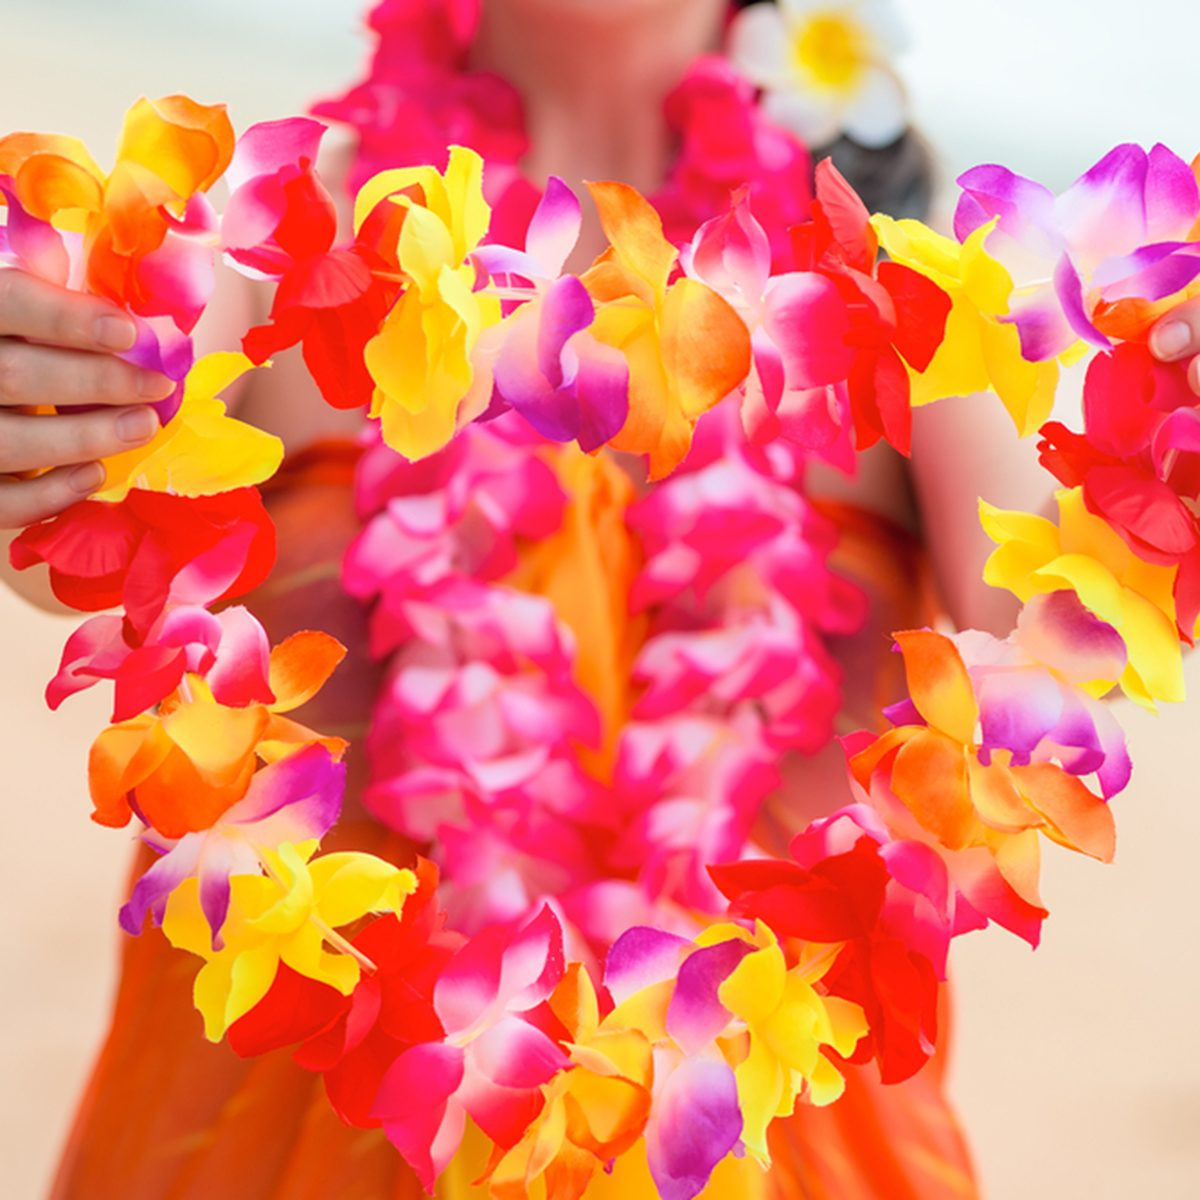 Beautiful floral Hawaiian Lei in the hands of a close-up woman